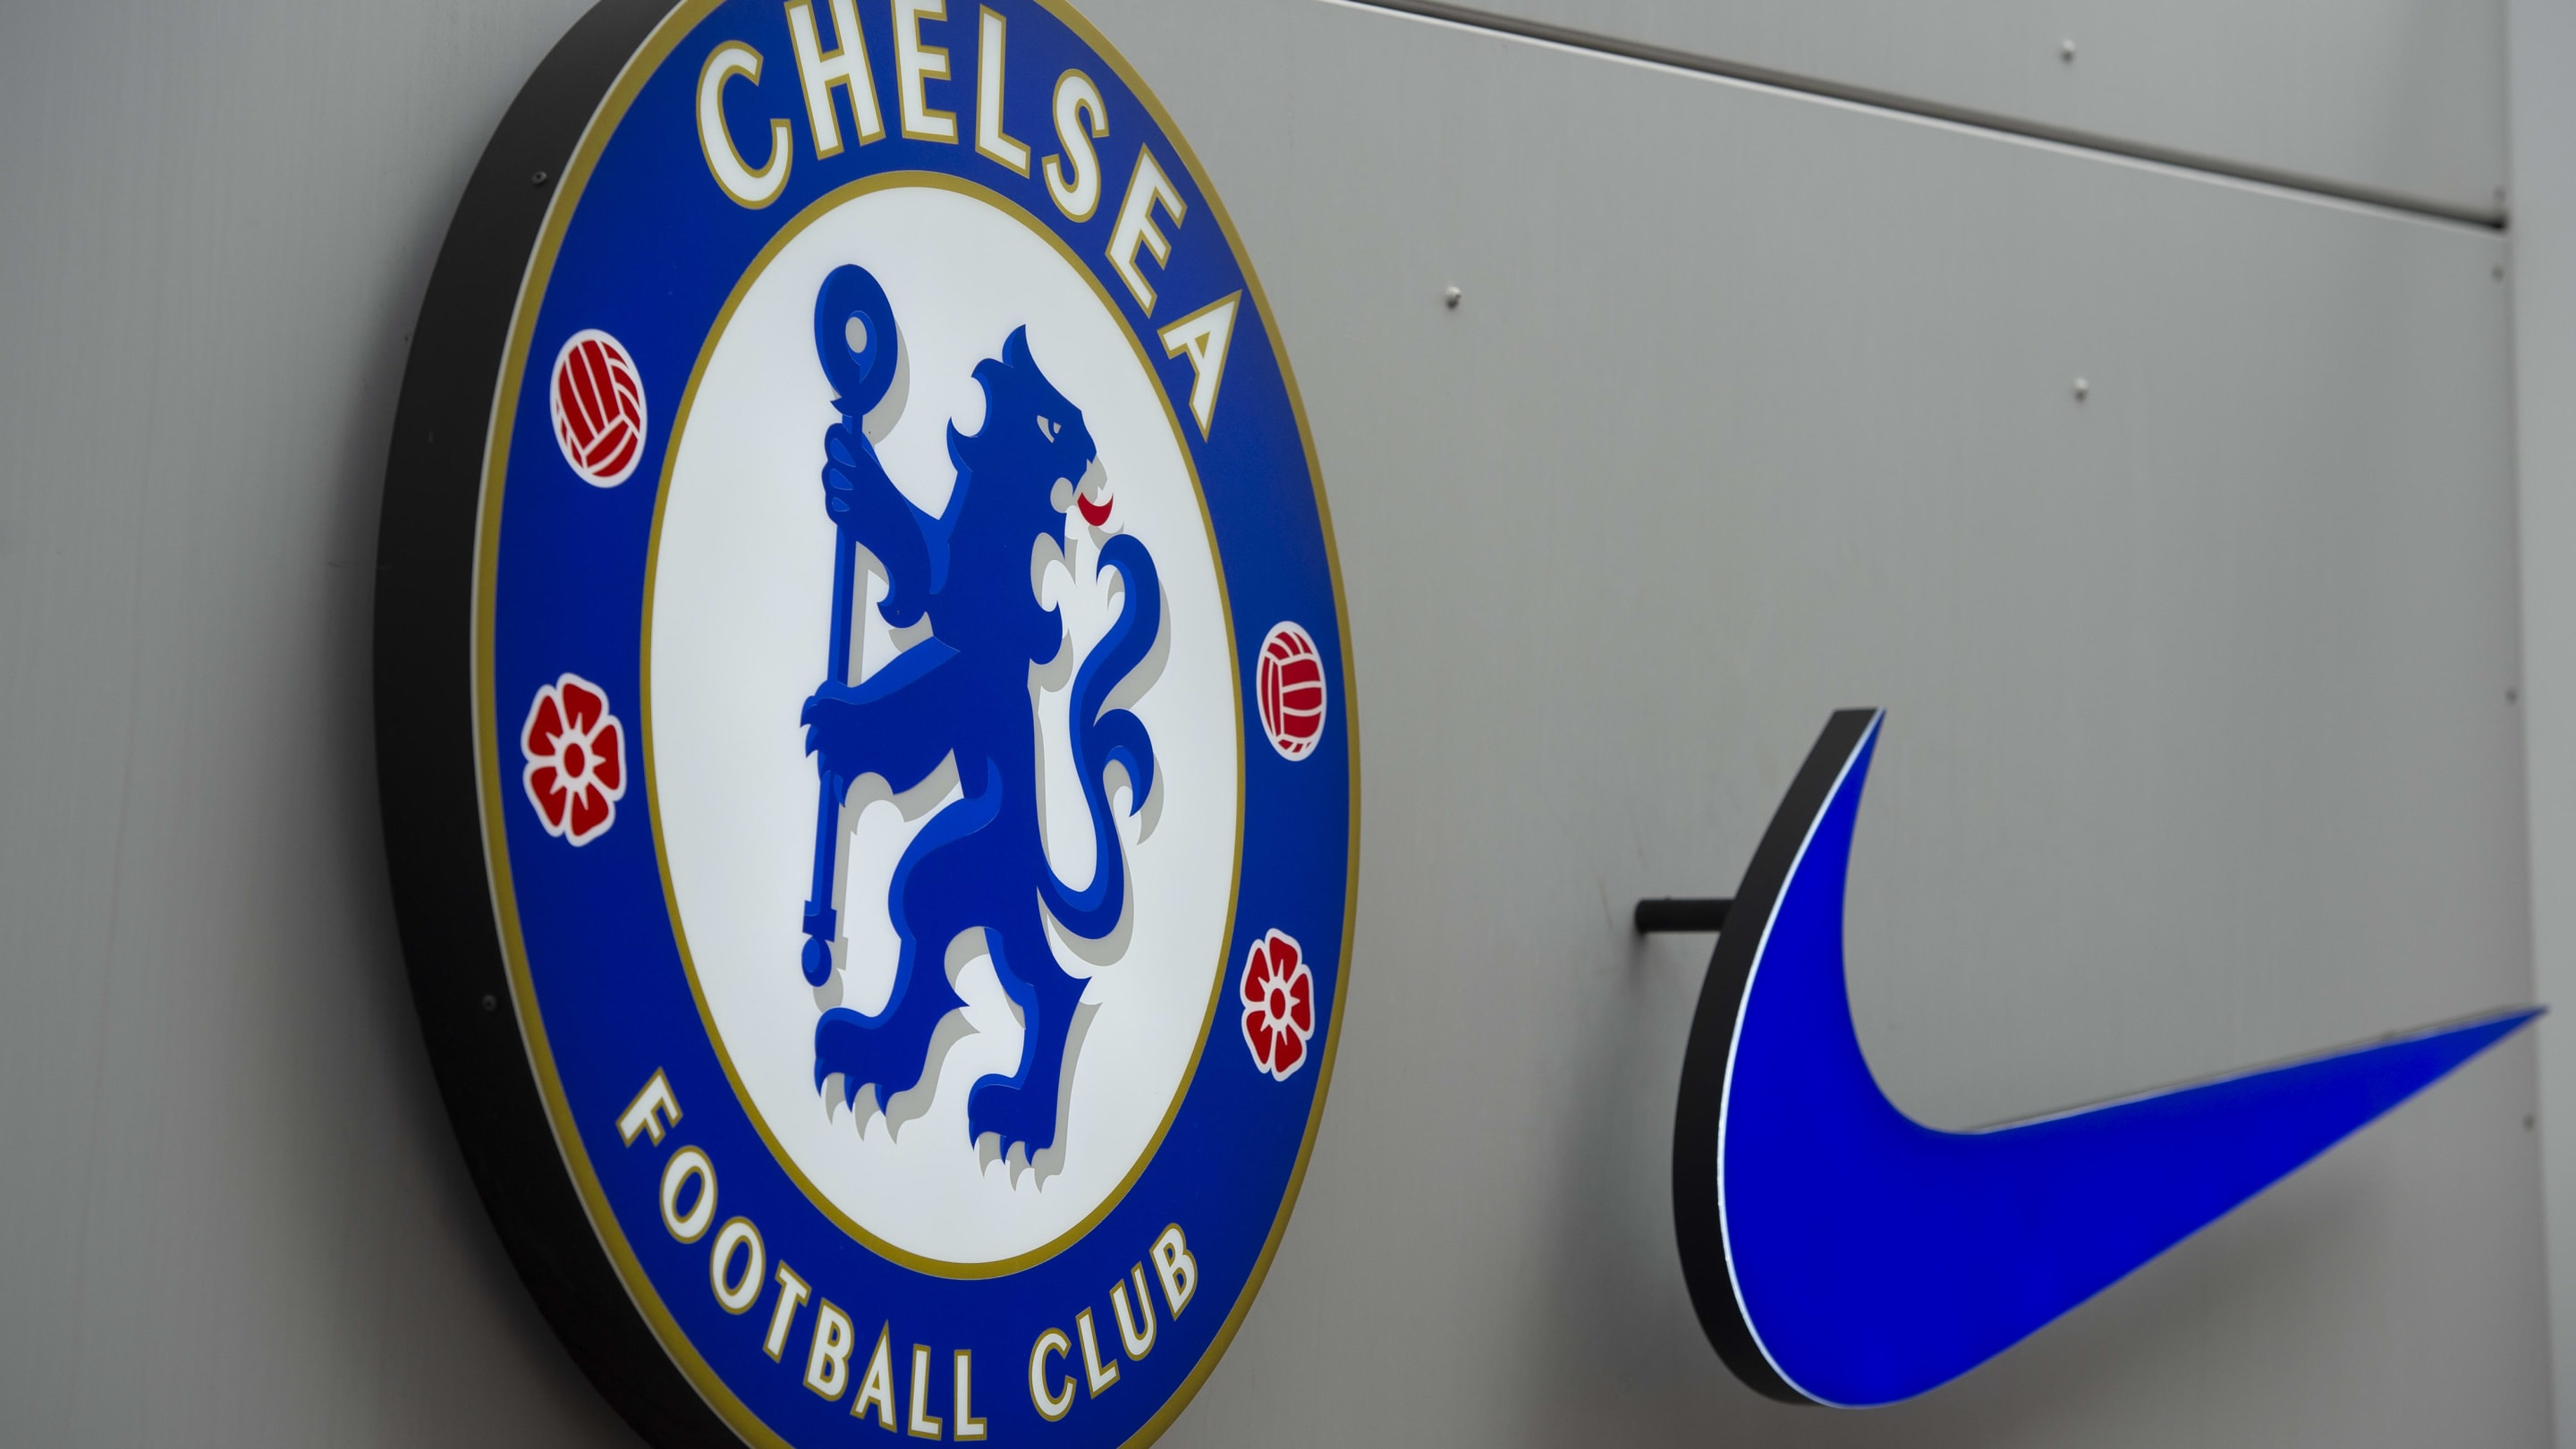 <p>New Chelsea fourth kit inspired by Nike Air Max 180 leaked thumbnail